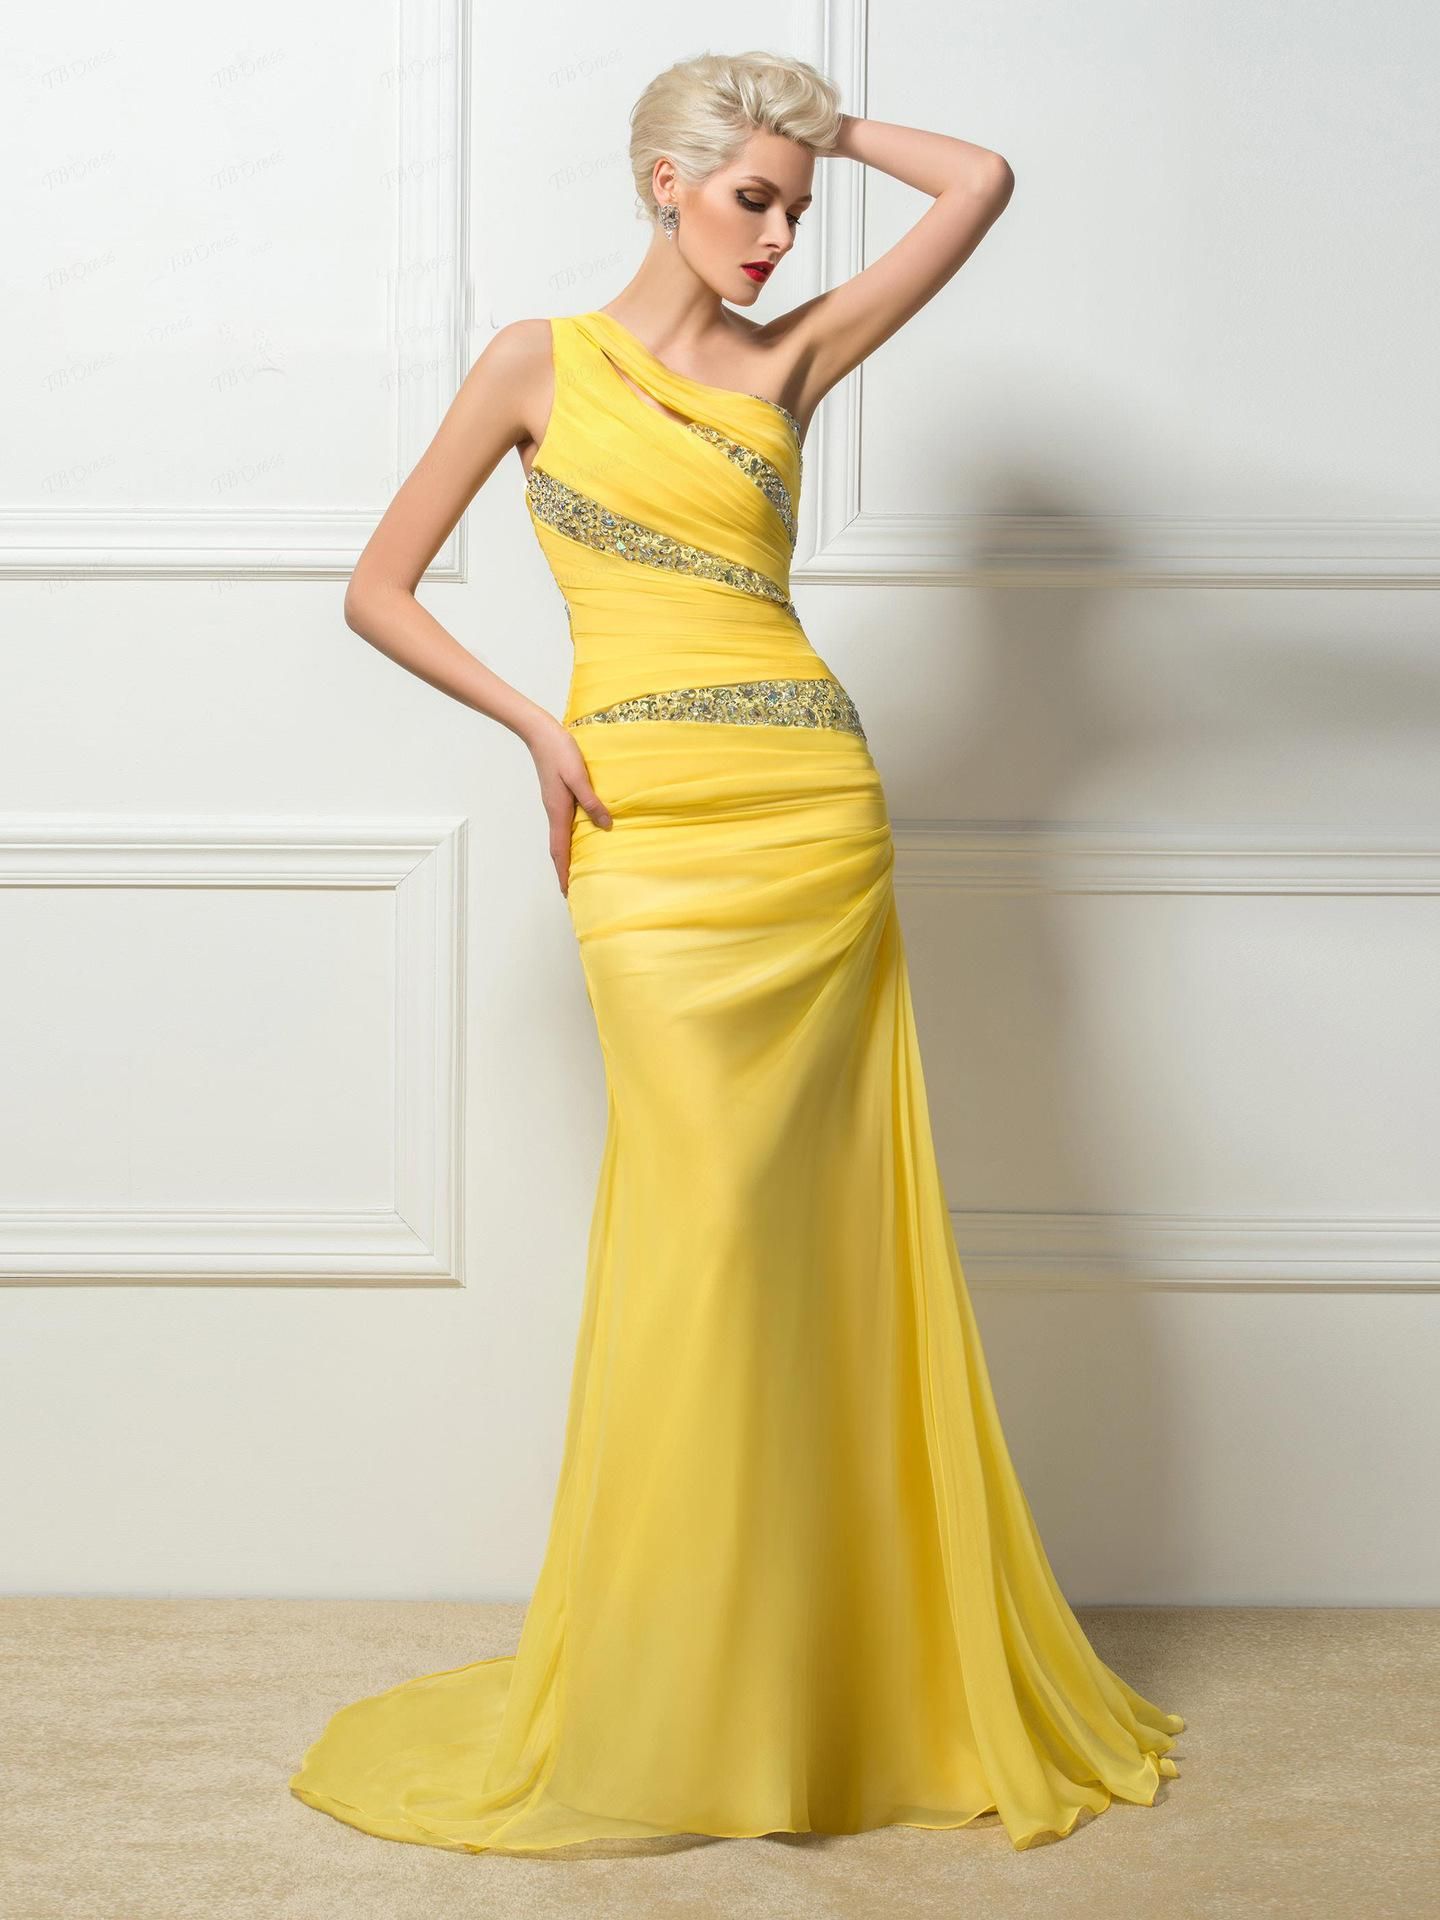 EYE CATCHING EVENING GOWNS FOR AN EVENING OUT ON THE TOWN ...